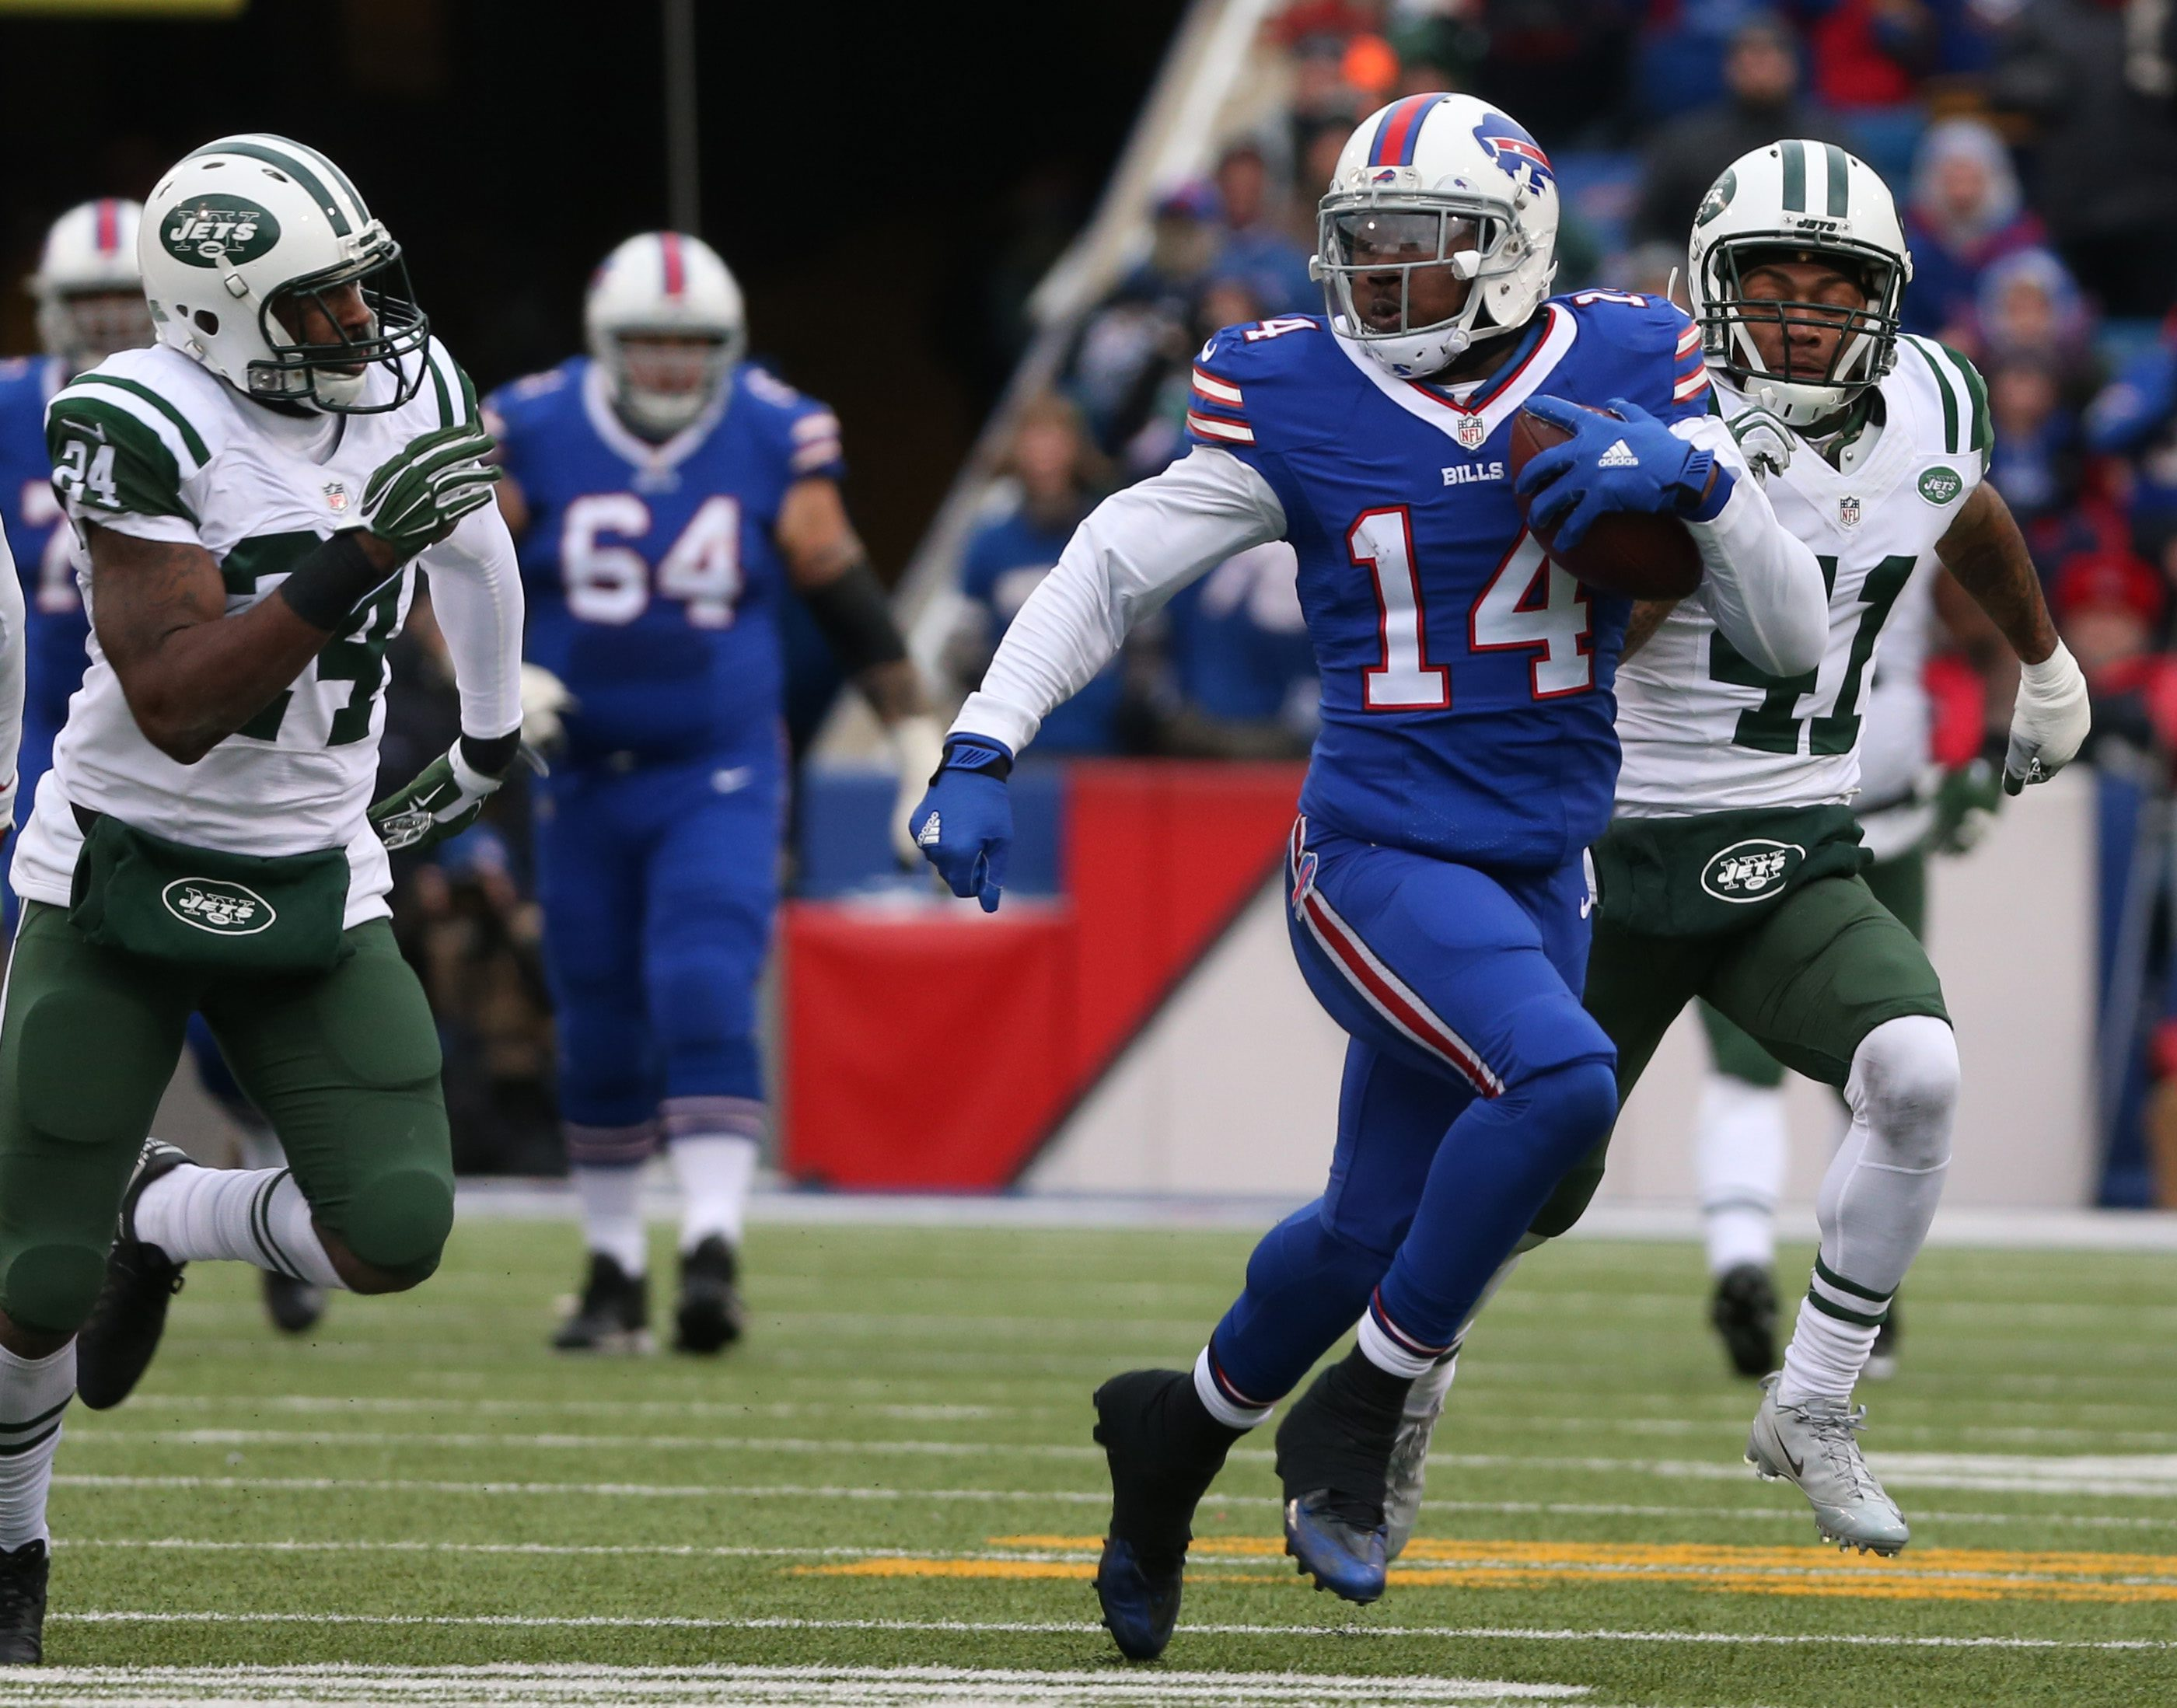 Buffalo Bills wide receiver Sammy Watkins (14) makes a great one-handed catch in front of New York Jets free safety Marcus Gilchrist (21) for a first down in the third quarter Sunday.  (James P. McCoy/ Buffalo News)